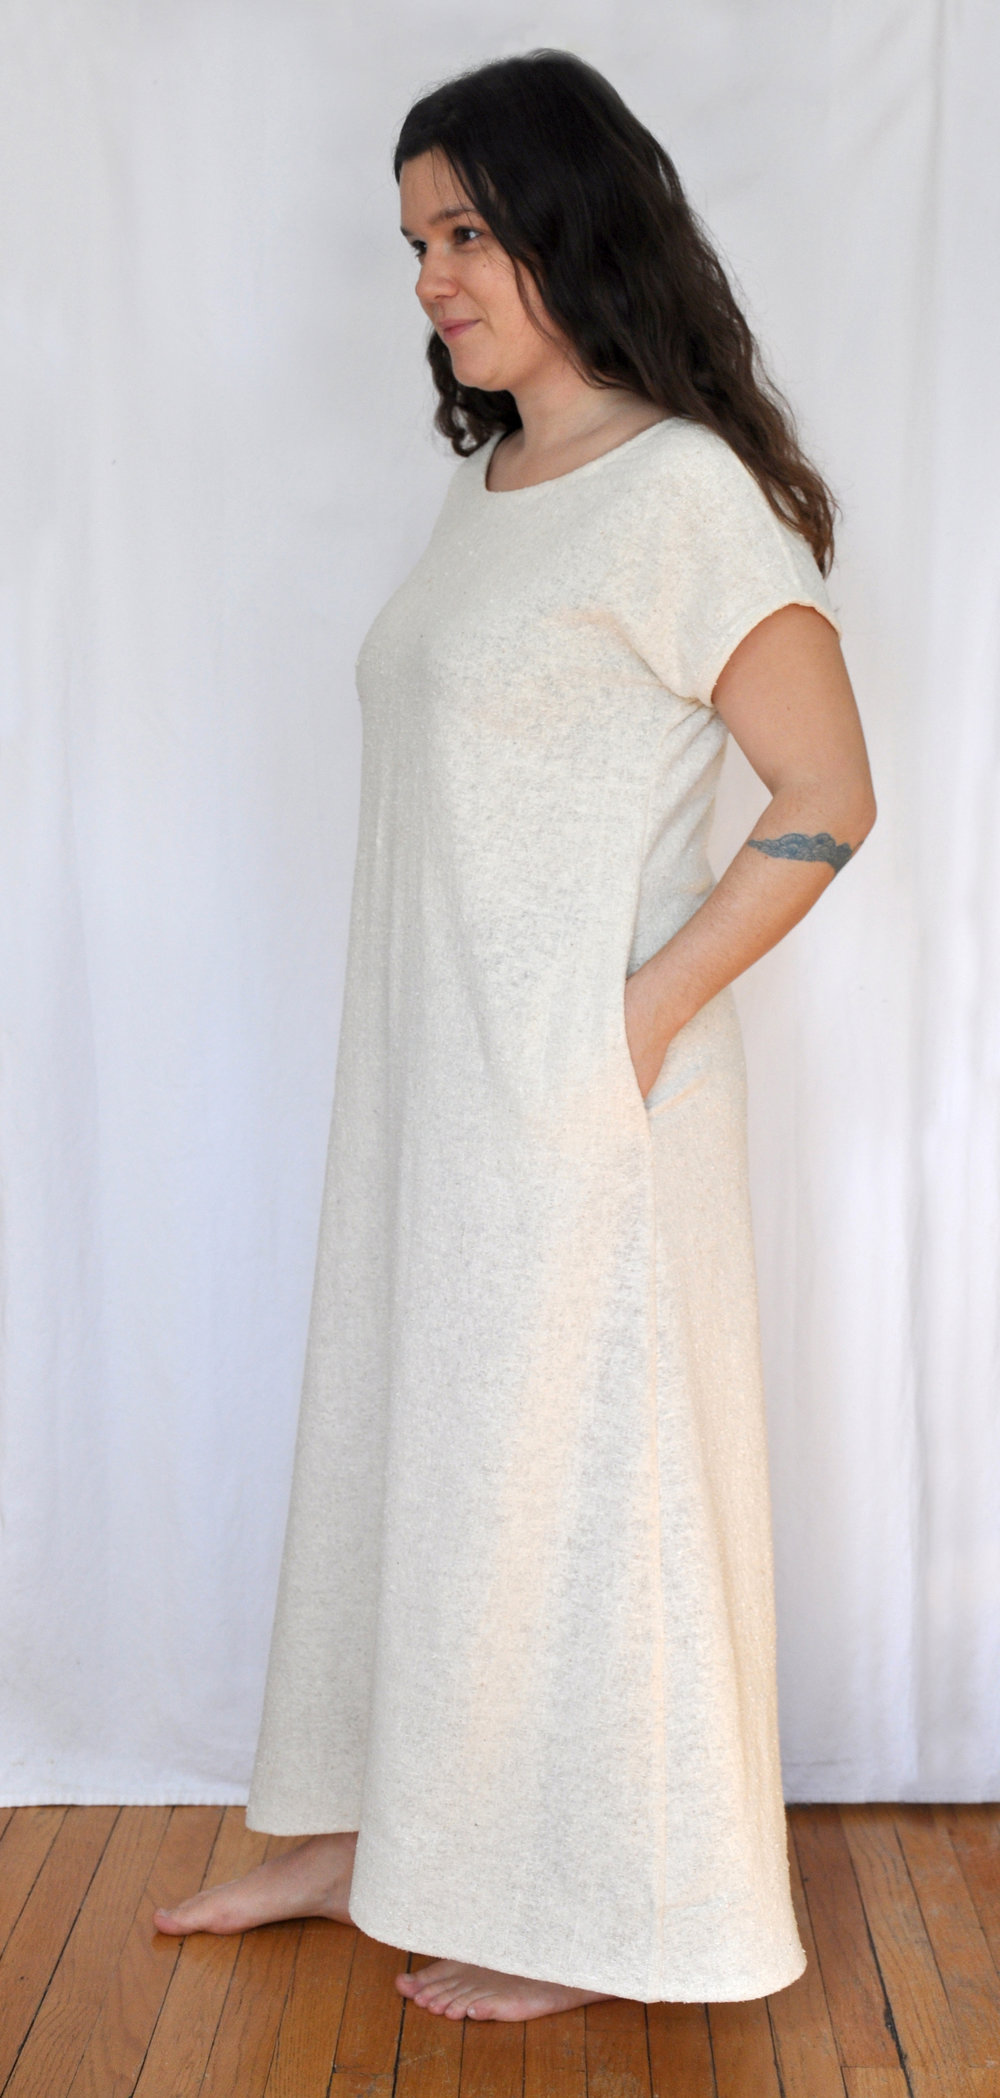 Megan_weddinggown.jpg